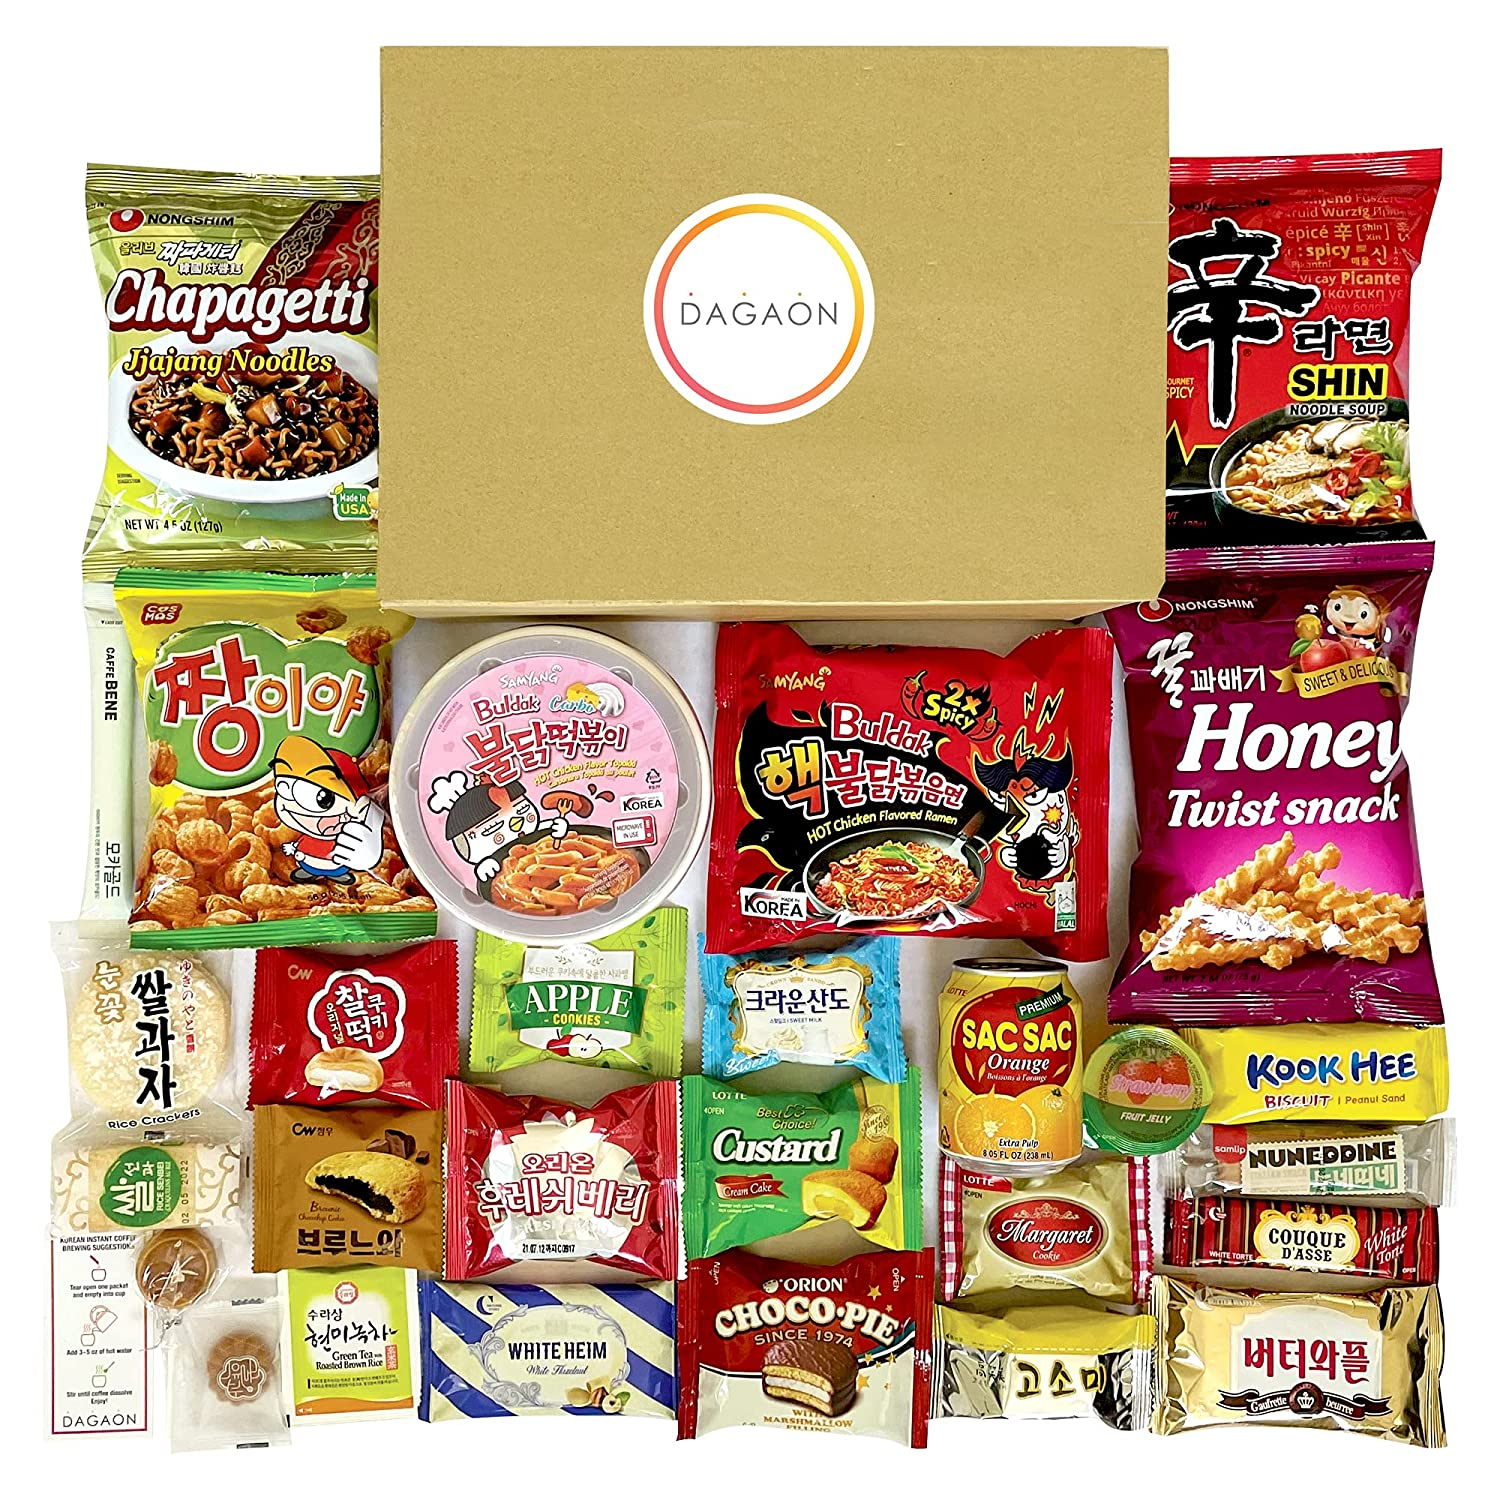 DAGAON Premium Korean Snack Box 28 Count – Scrumptious Korean Snacks and Foods Including Chips, Biscuits, Cookies, Pies, Candies, Ramen Noodles, Tteokbokki. Variety Korean snacks for any occasions, gifts and everyone.